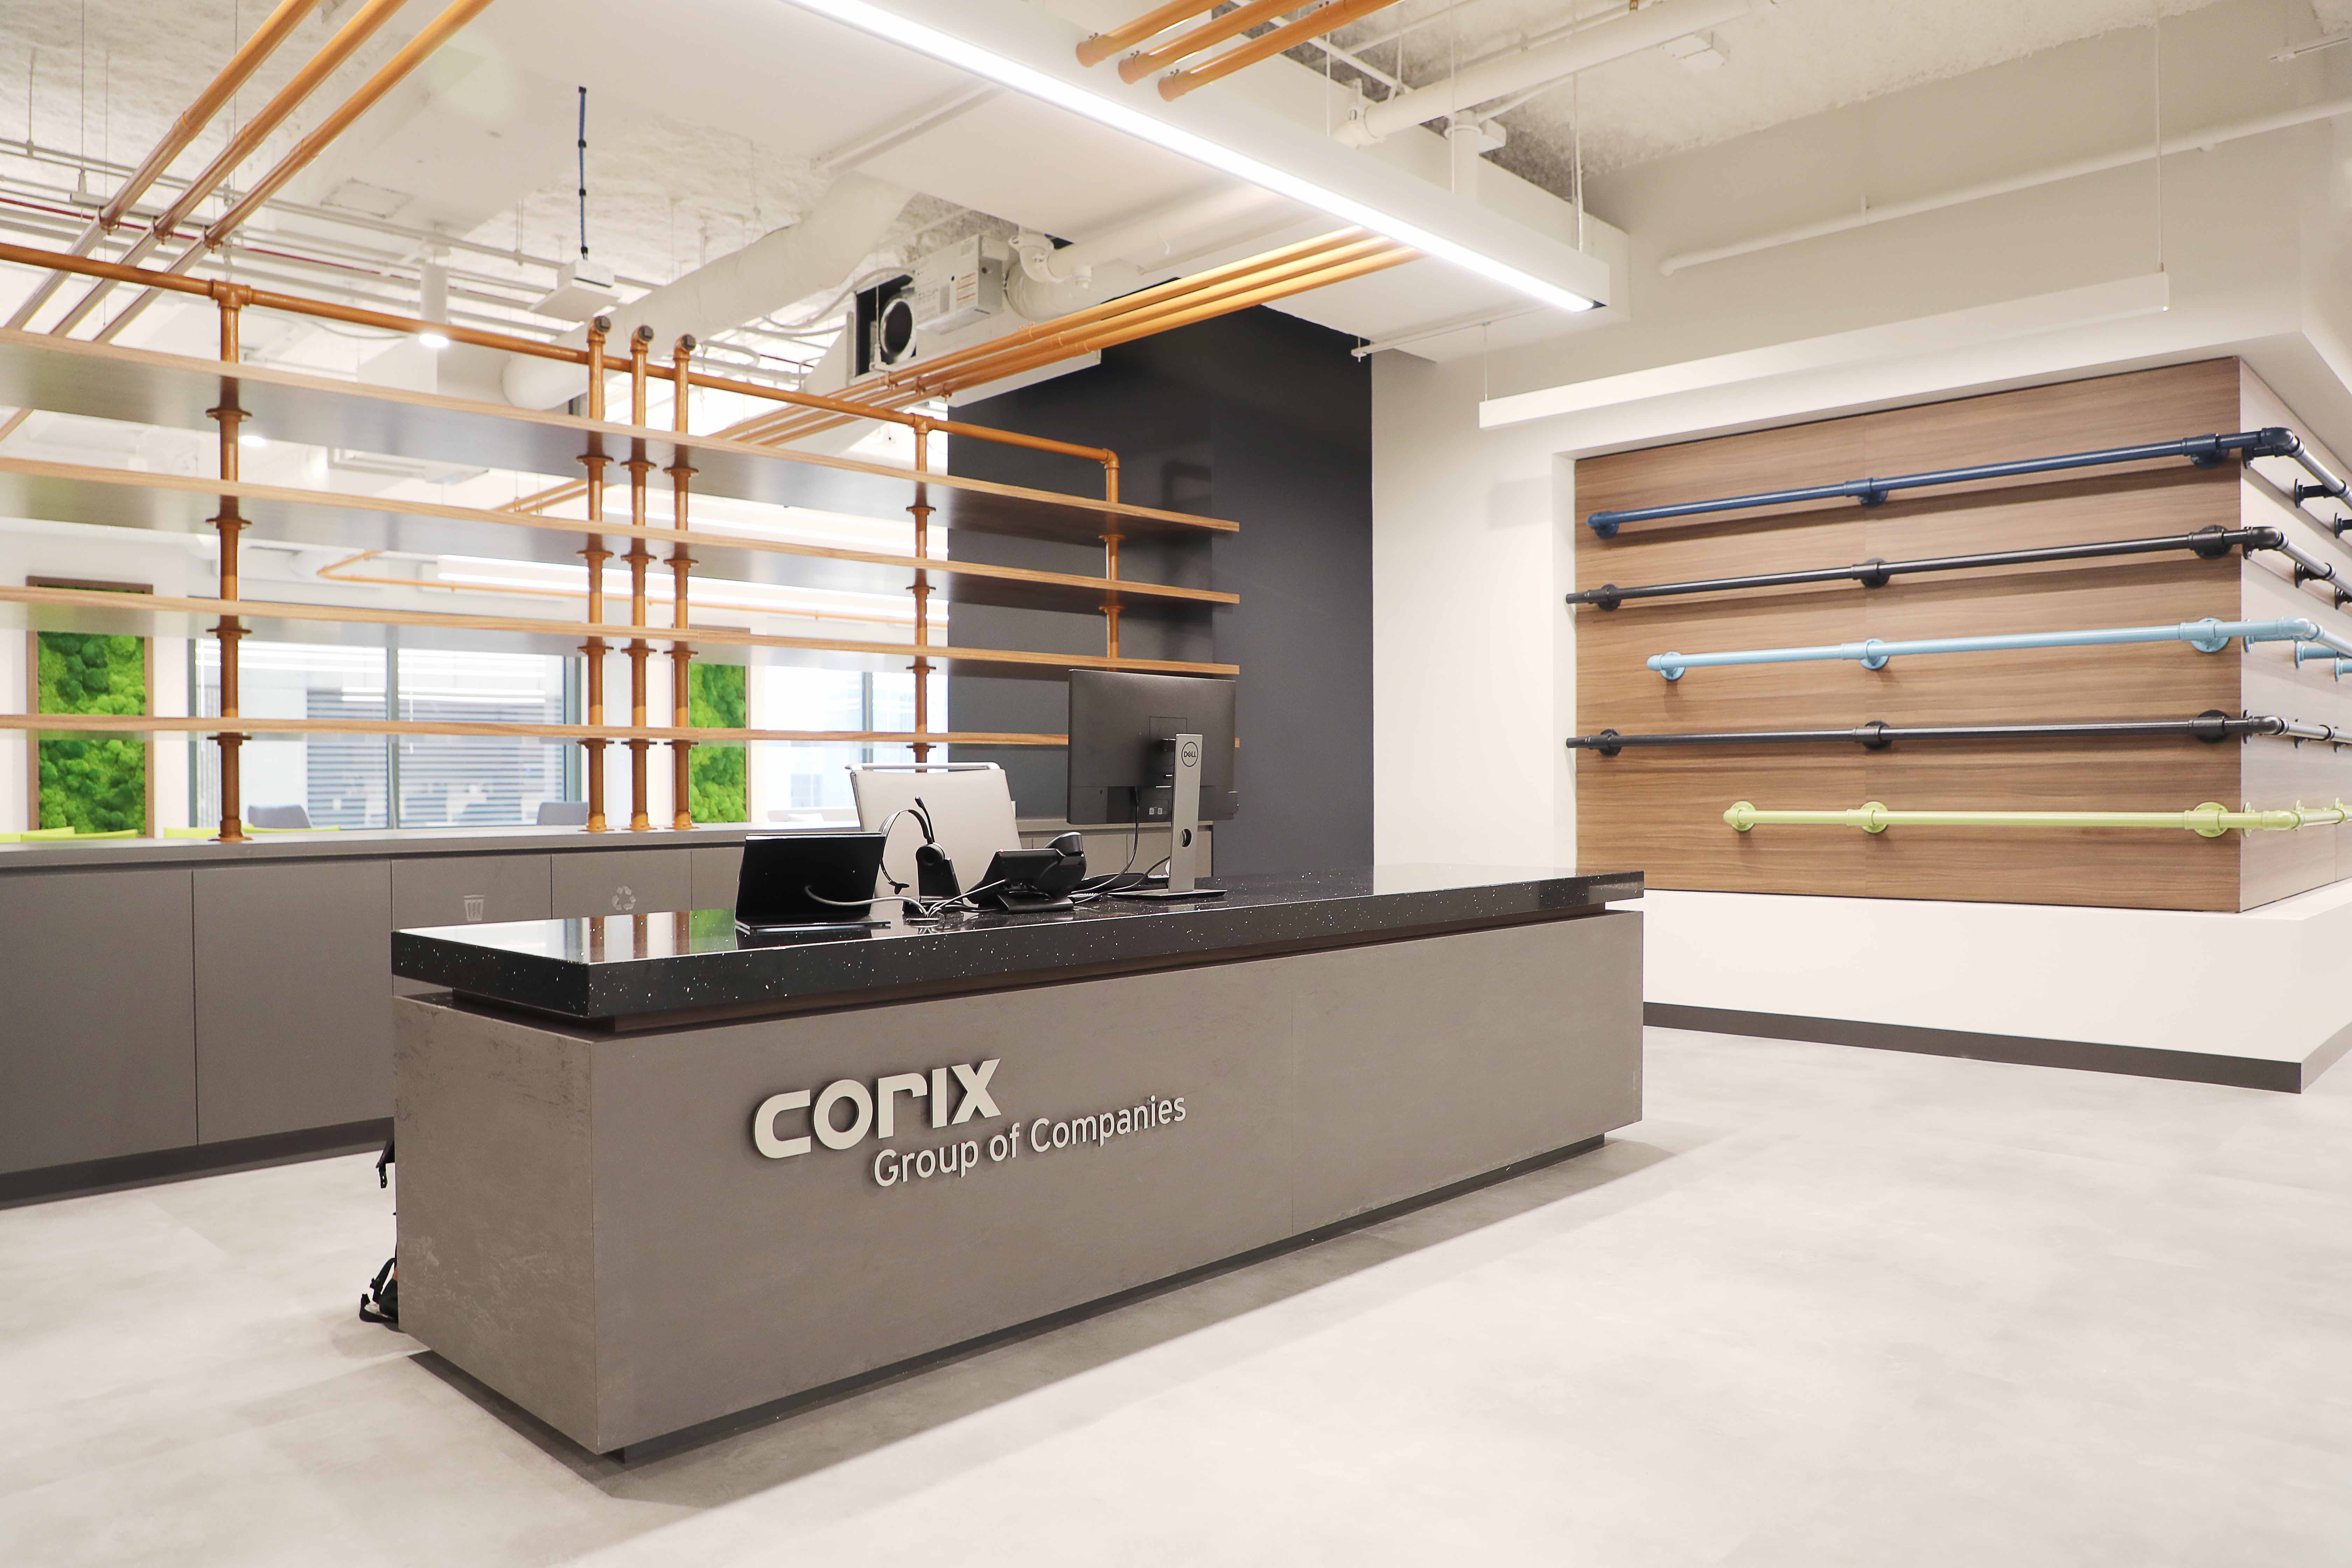 Skender Completes Office Interior Construction for Corix Group of Companies